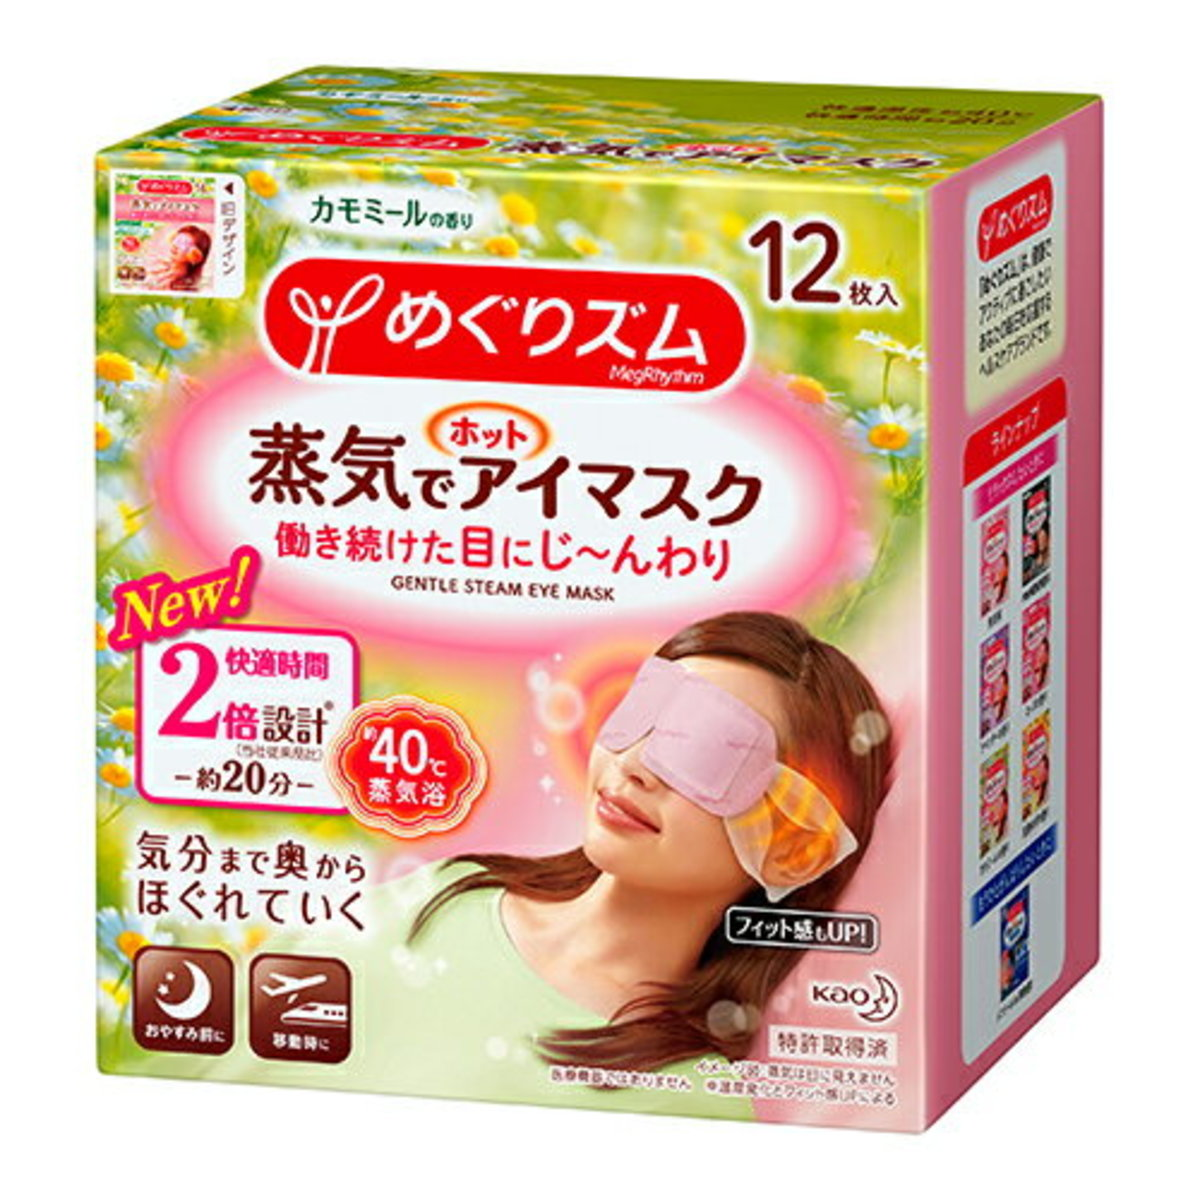 MegRhythm Steam Eye Mask - Ginger Aroma (Chamomile) 12pcs/Box